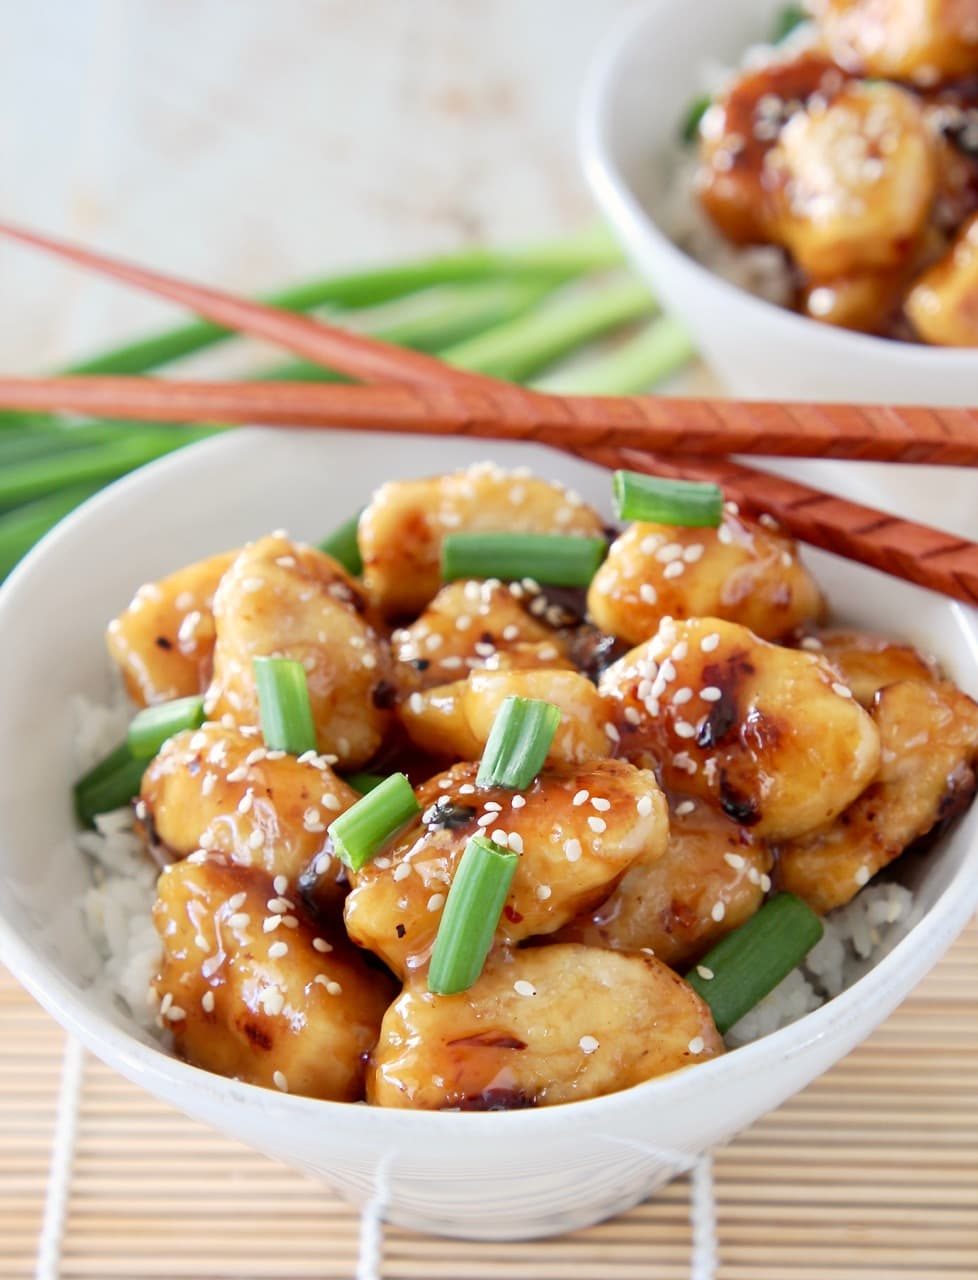 Chinese honey chicken pieces in white bowl with white rice, garnished with green onions and sesame seeds with brown chopsticks on the side of the bowl and whole green onions in the background